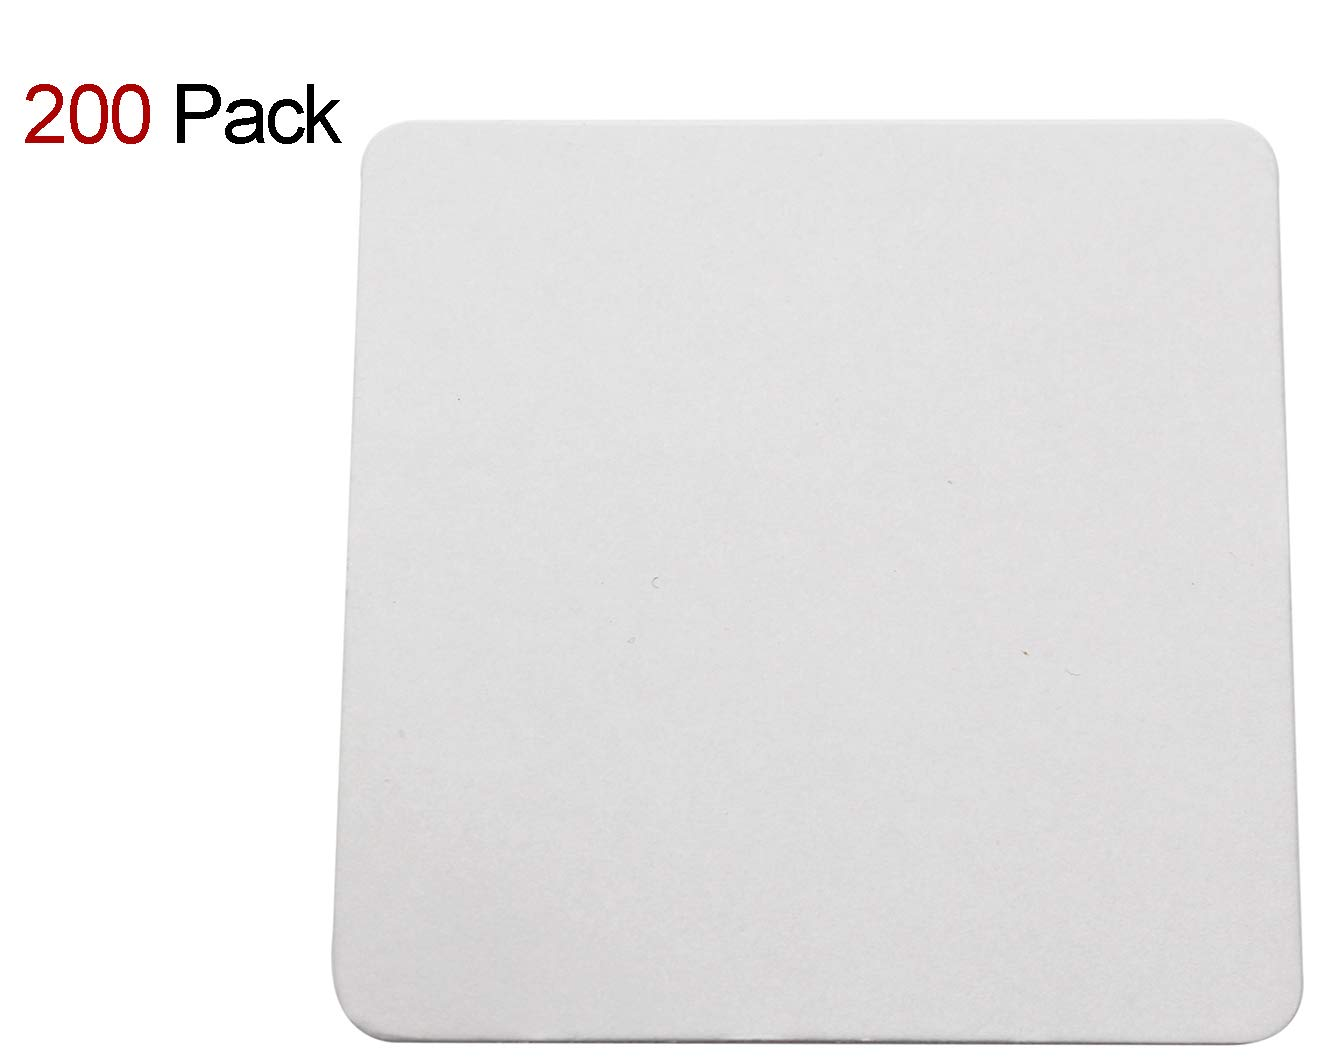 Travelwell Square 4-inch Length and Width Thicker (0.8 MM) Non Slip Drink White Paper Coaster Set – Set of 200